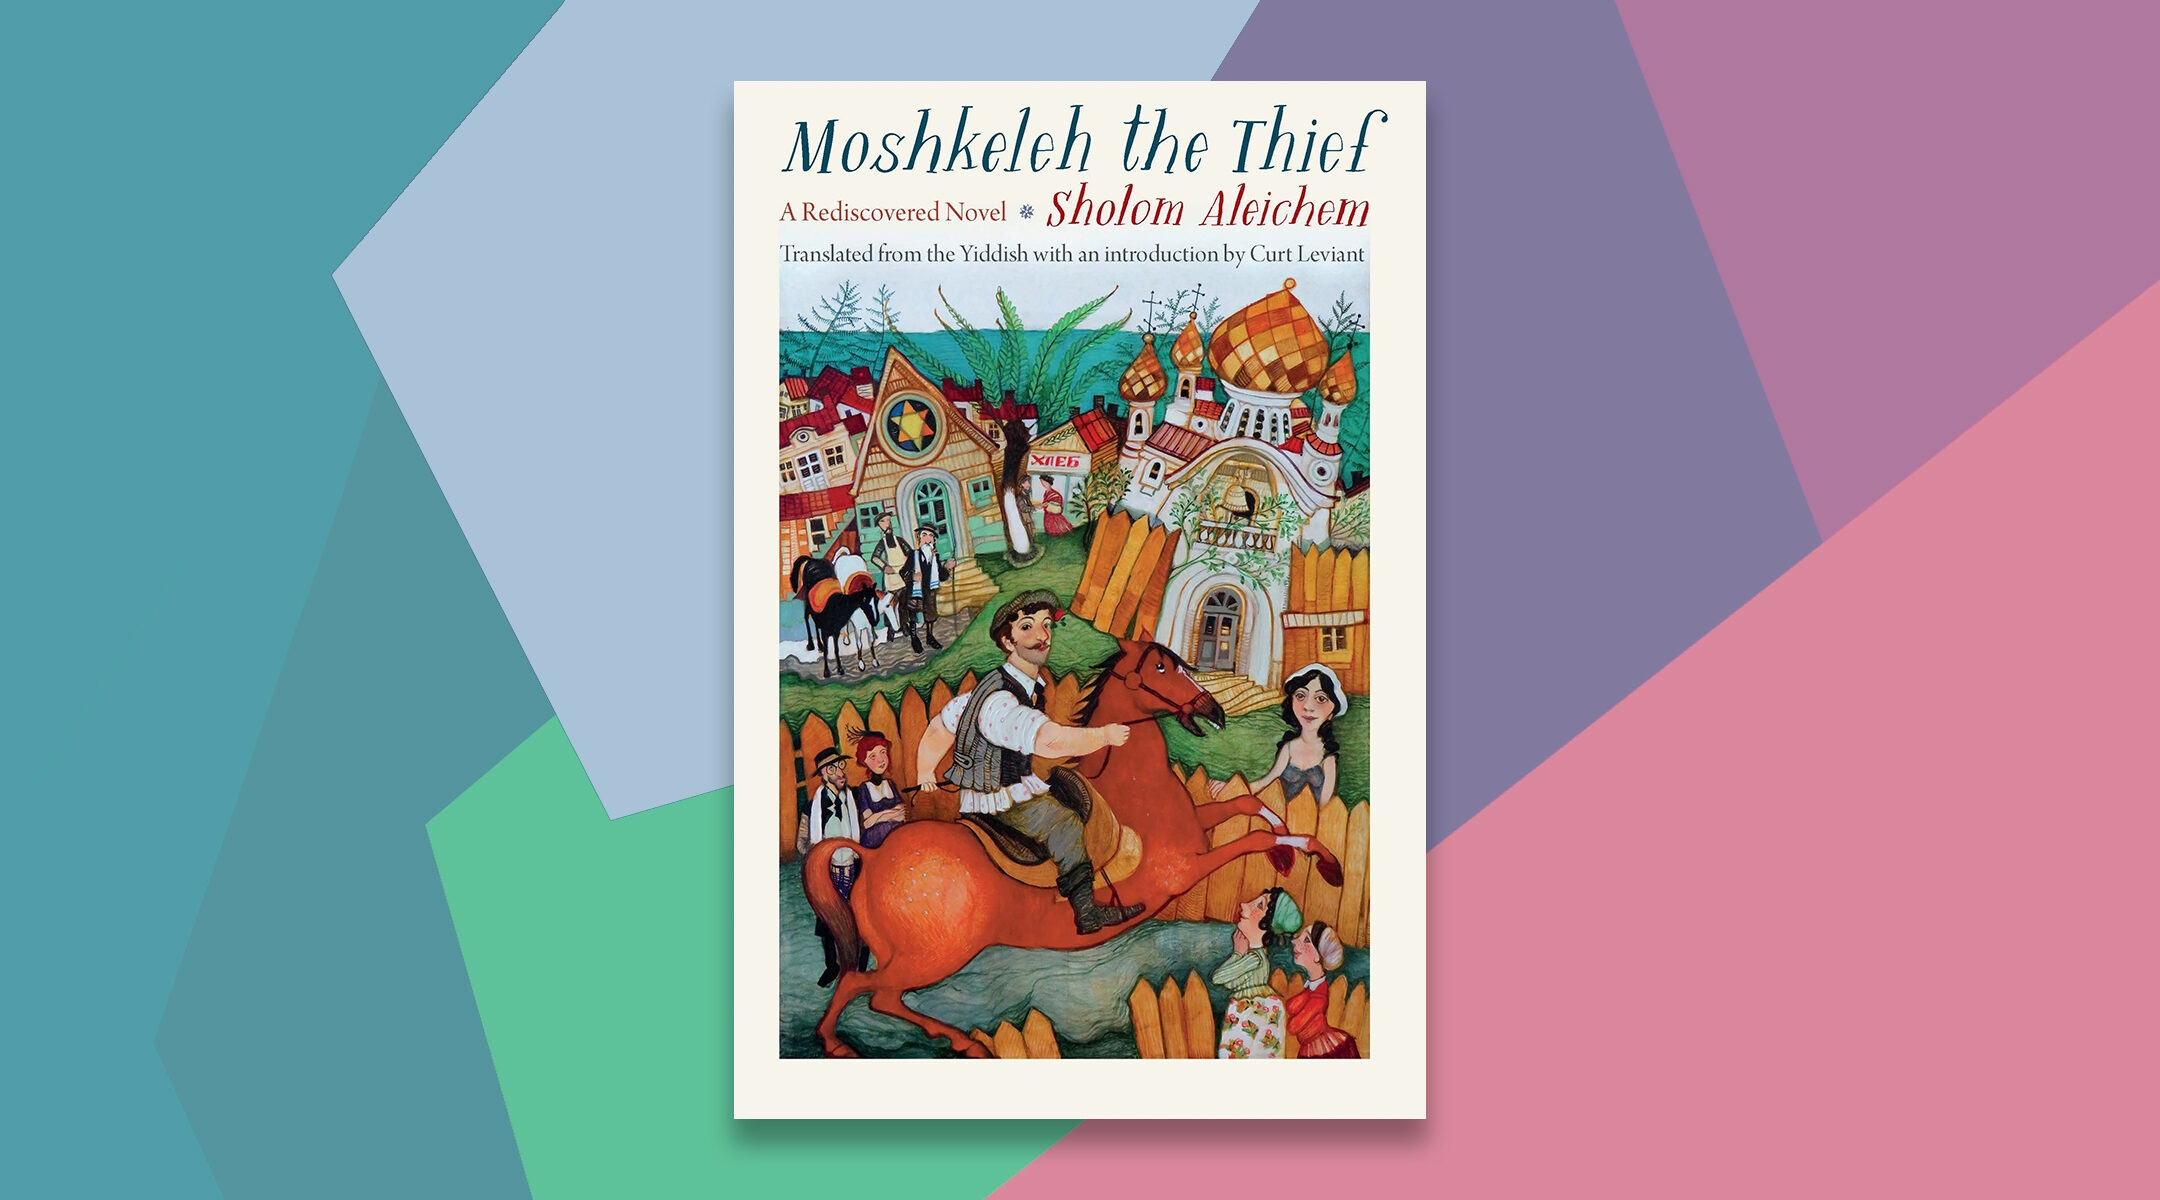 """The cover of Curt Leviant's translation of """"Moshkeleh the Thief."""""""